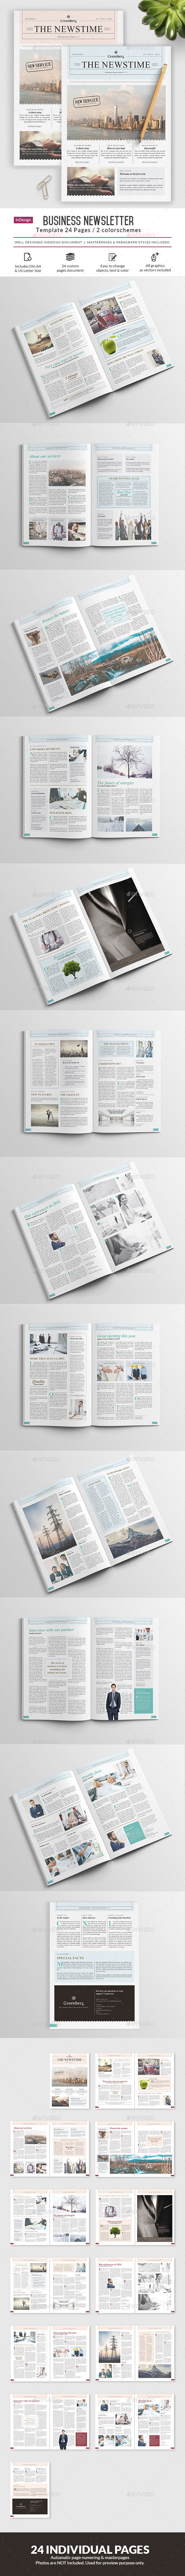 Business Newsletter - 24 Pages Template InDesign INDD